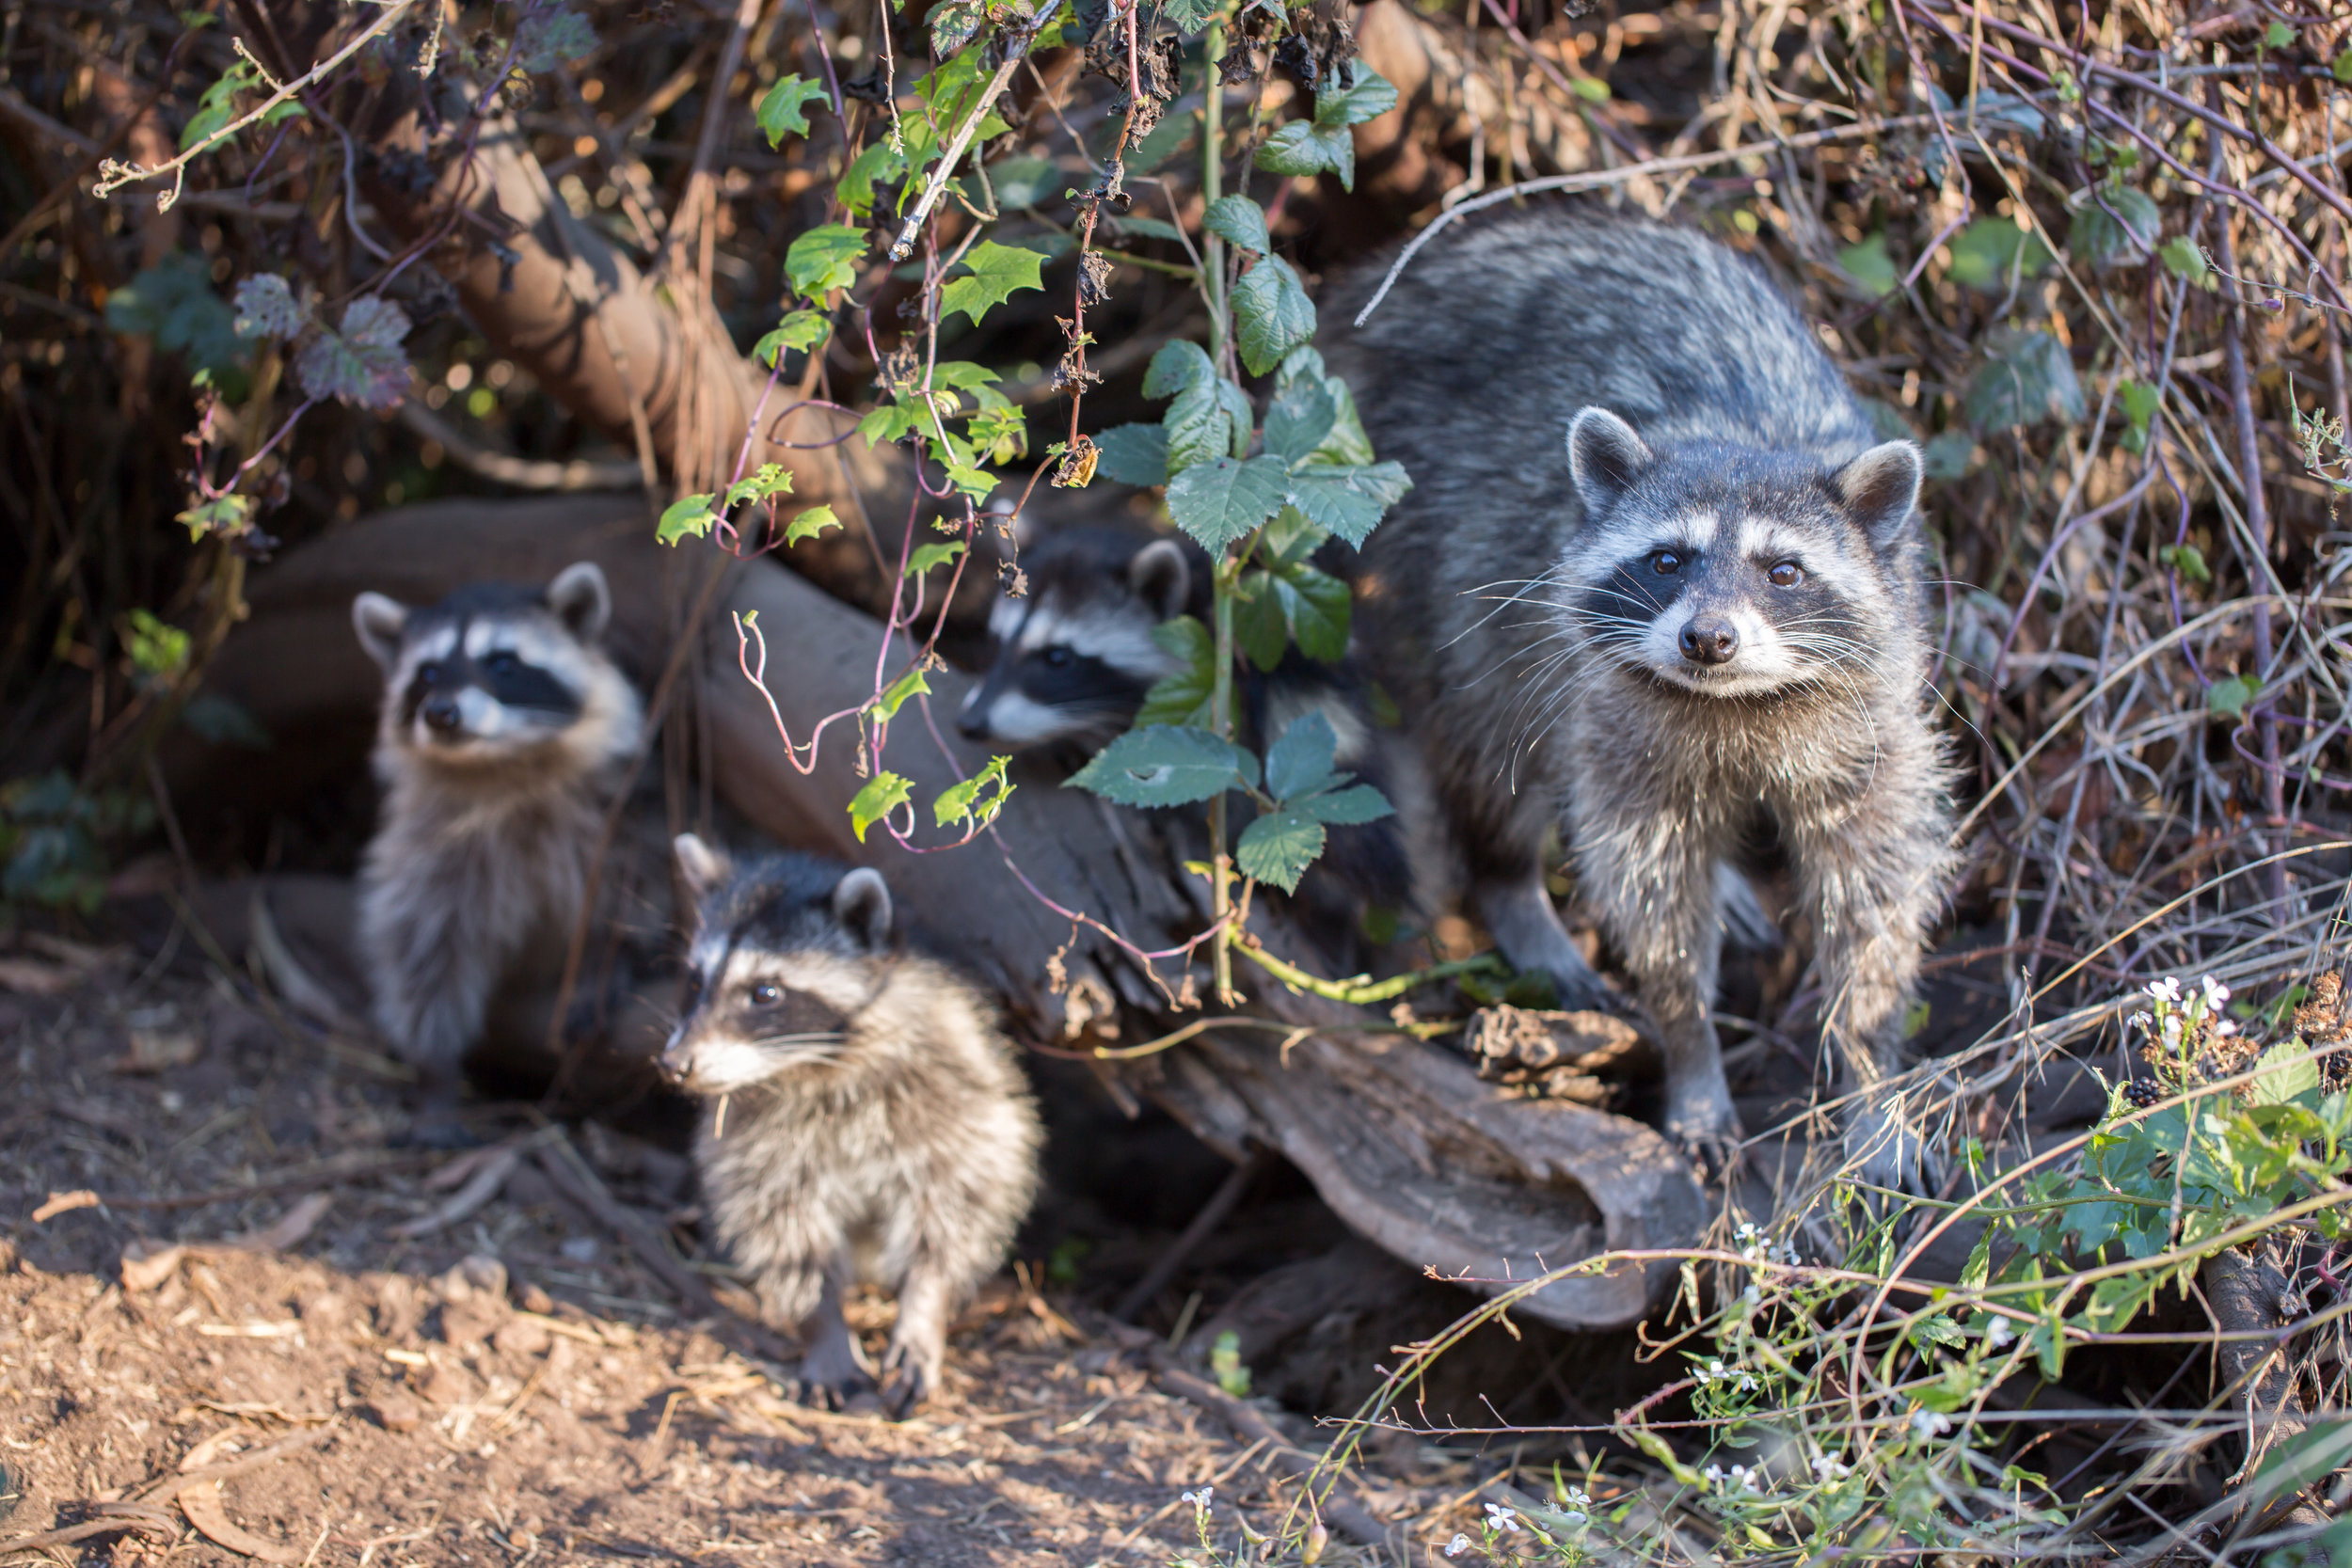 Raccoon (Procyon lotor) family eating berries. San Bruno Mountain State Park, San Mateo County, California, USA.